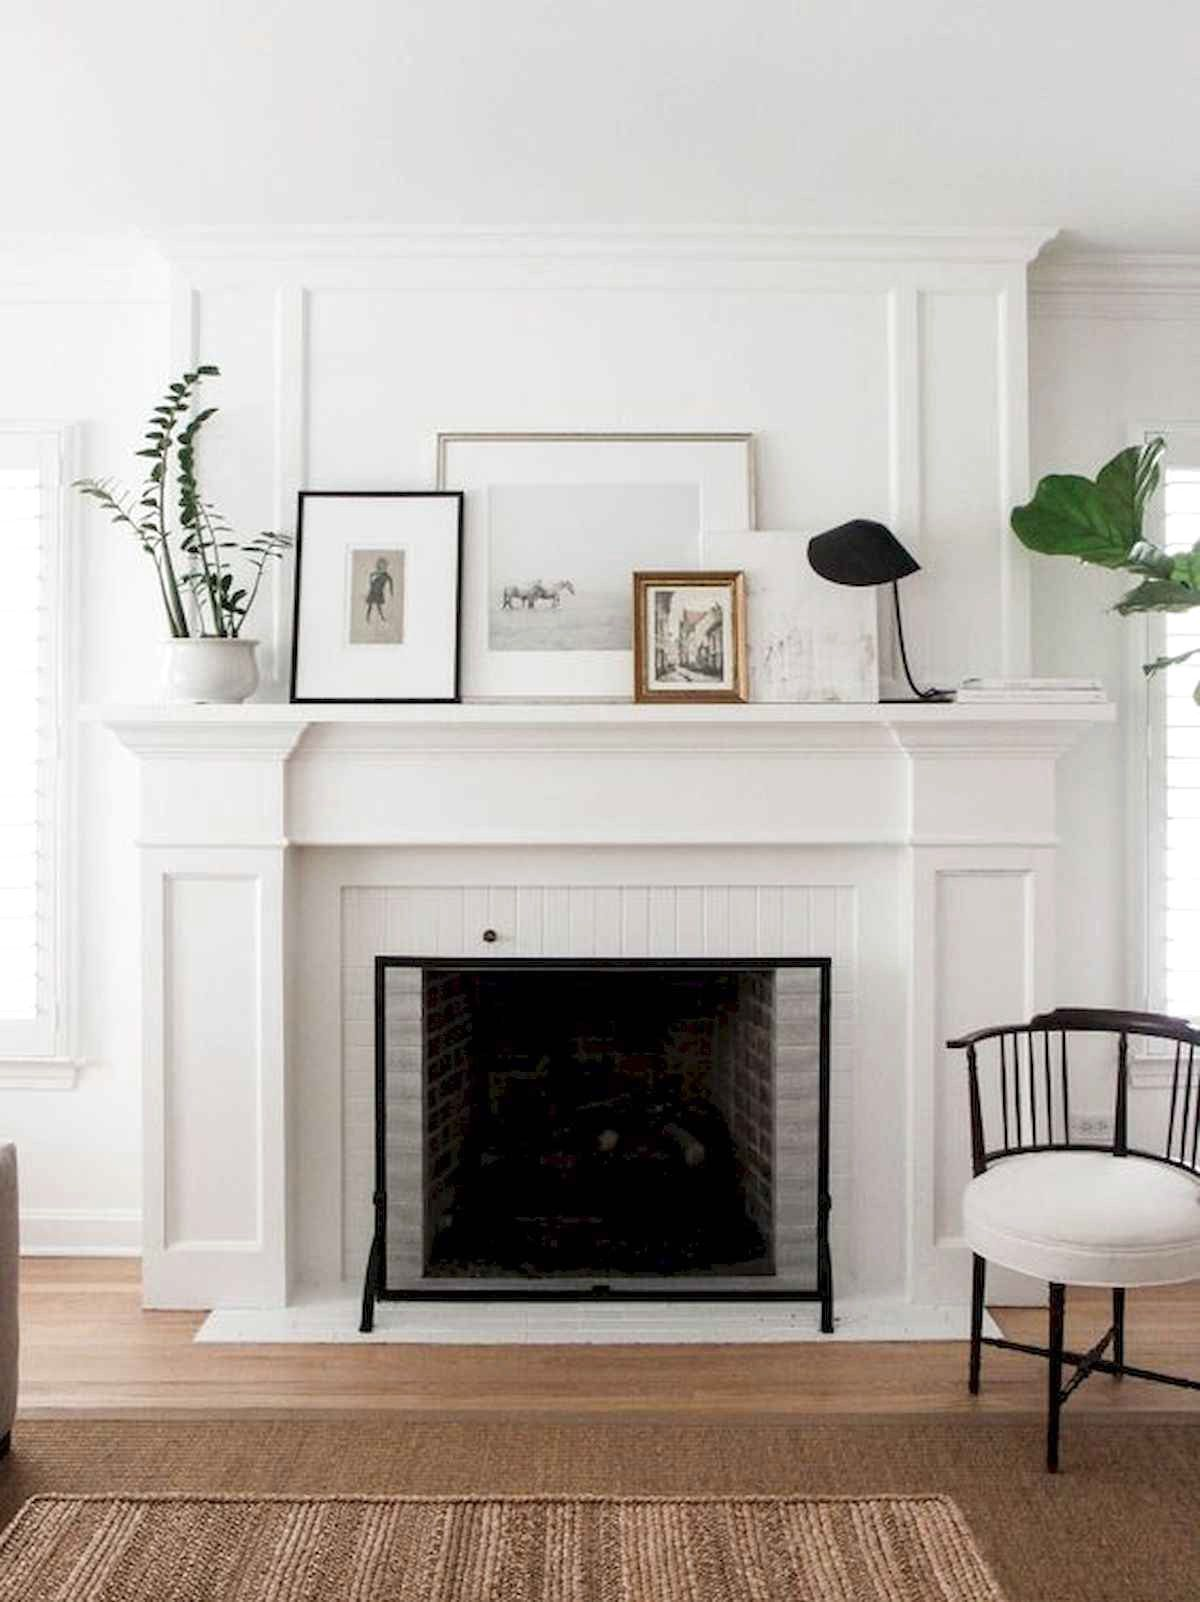 Best Modern Farmhouse Fireplace Mantel Decor Ideas Frugal Living Fireplace Mantle Decor Living Room Decor Inspiration Fireplace Mantel Designs